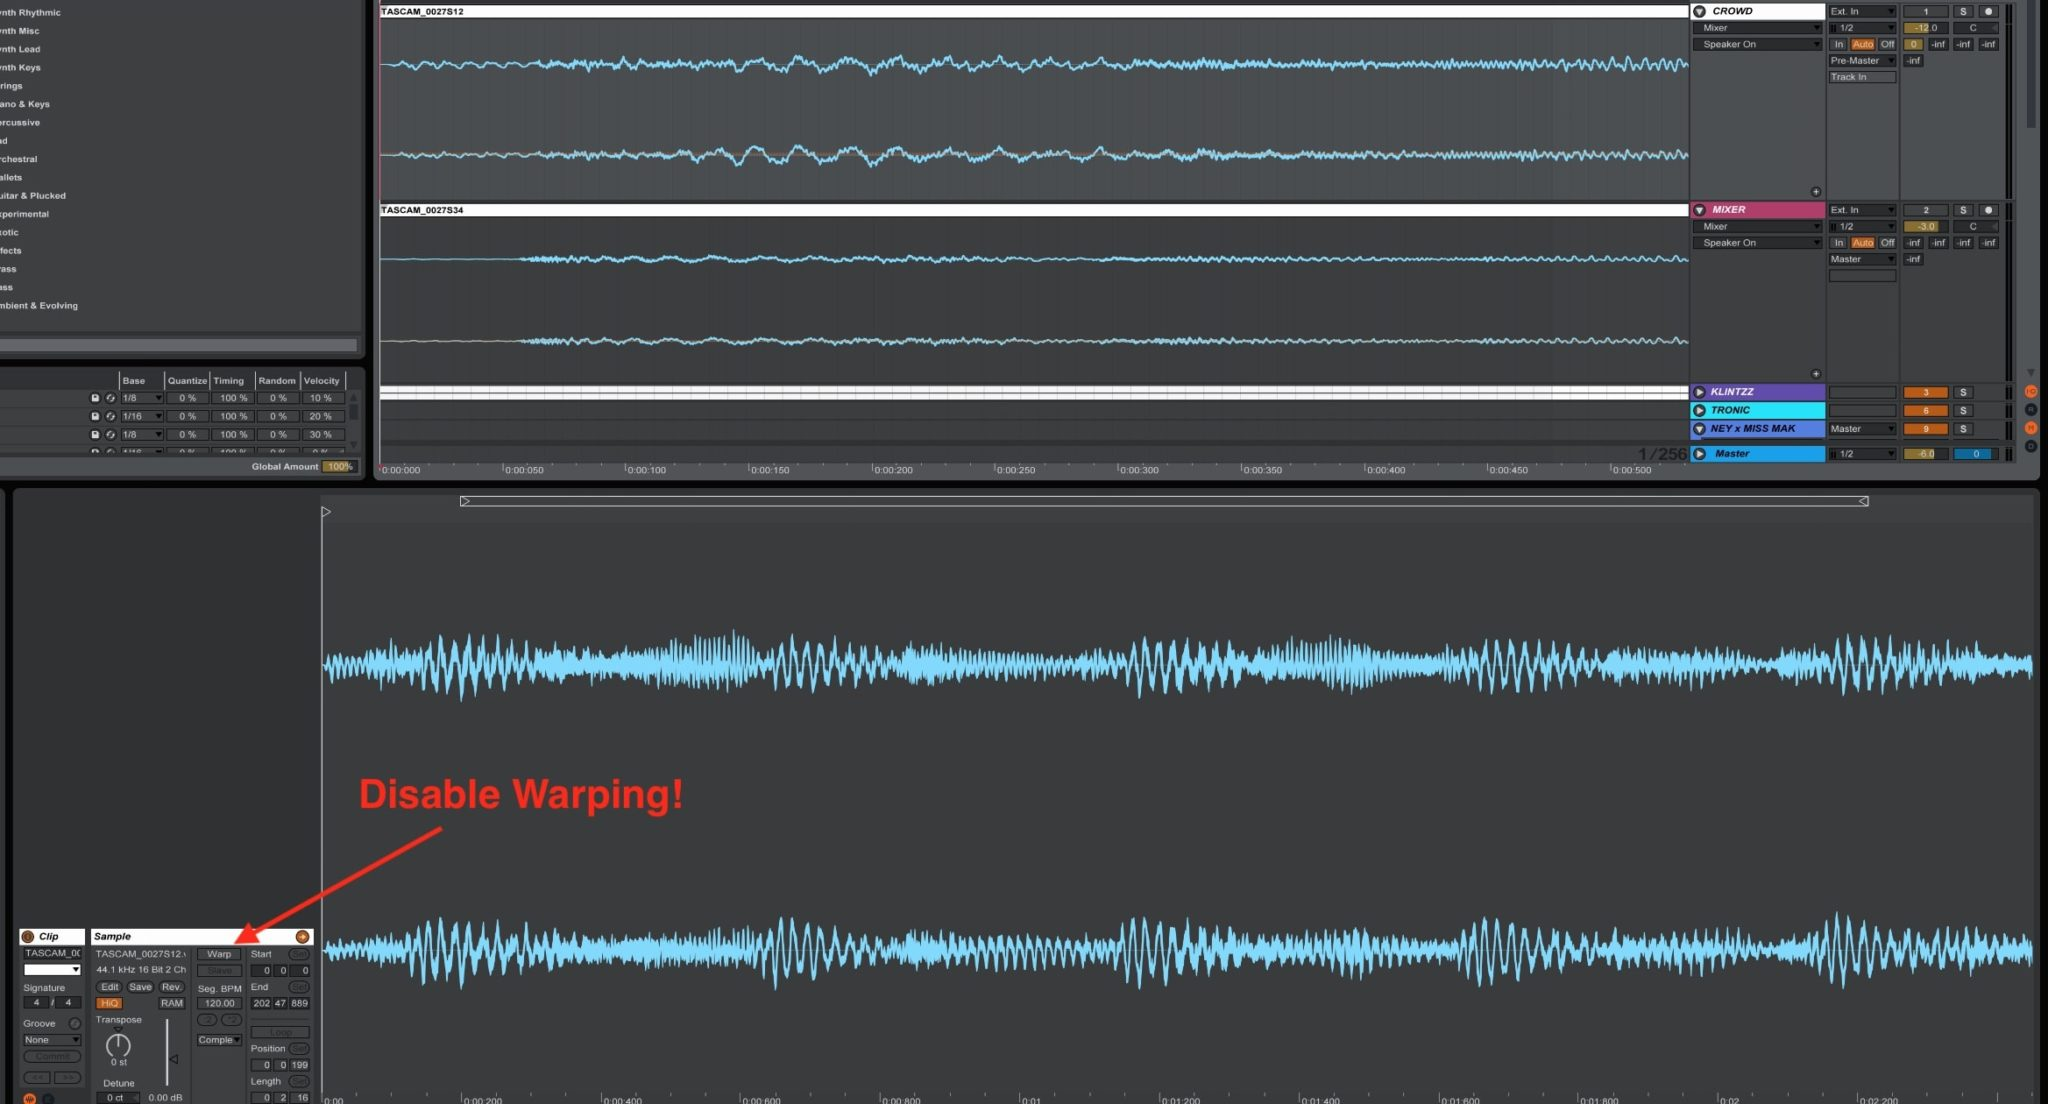 Disable Warping in Ableton